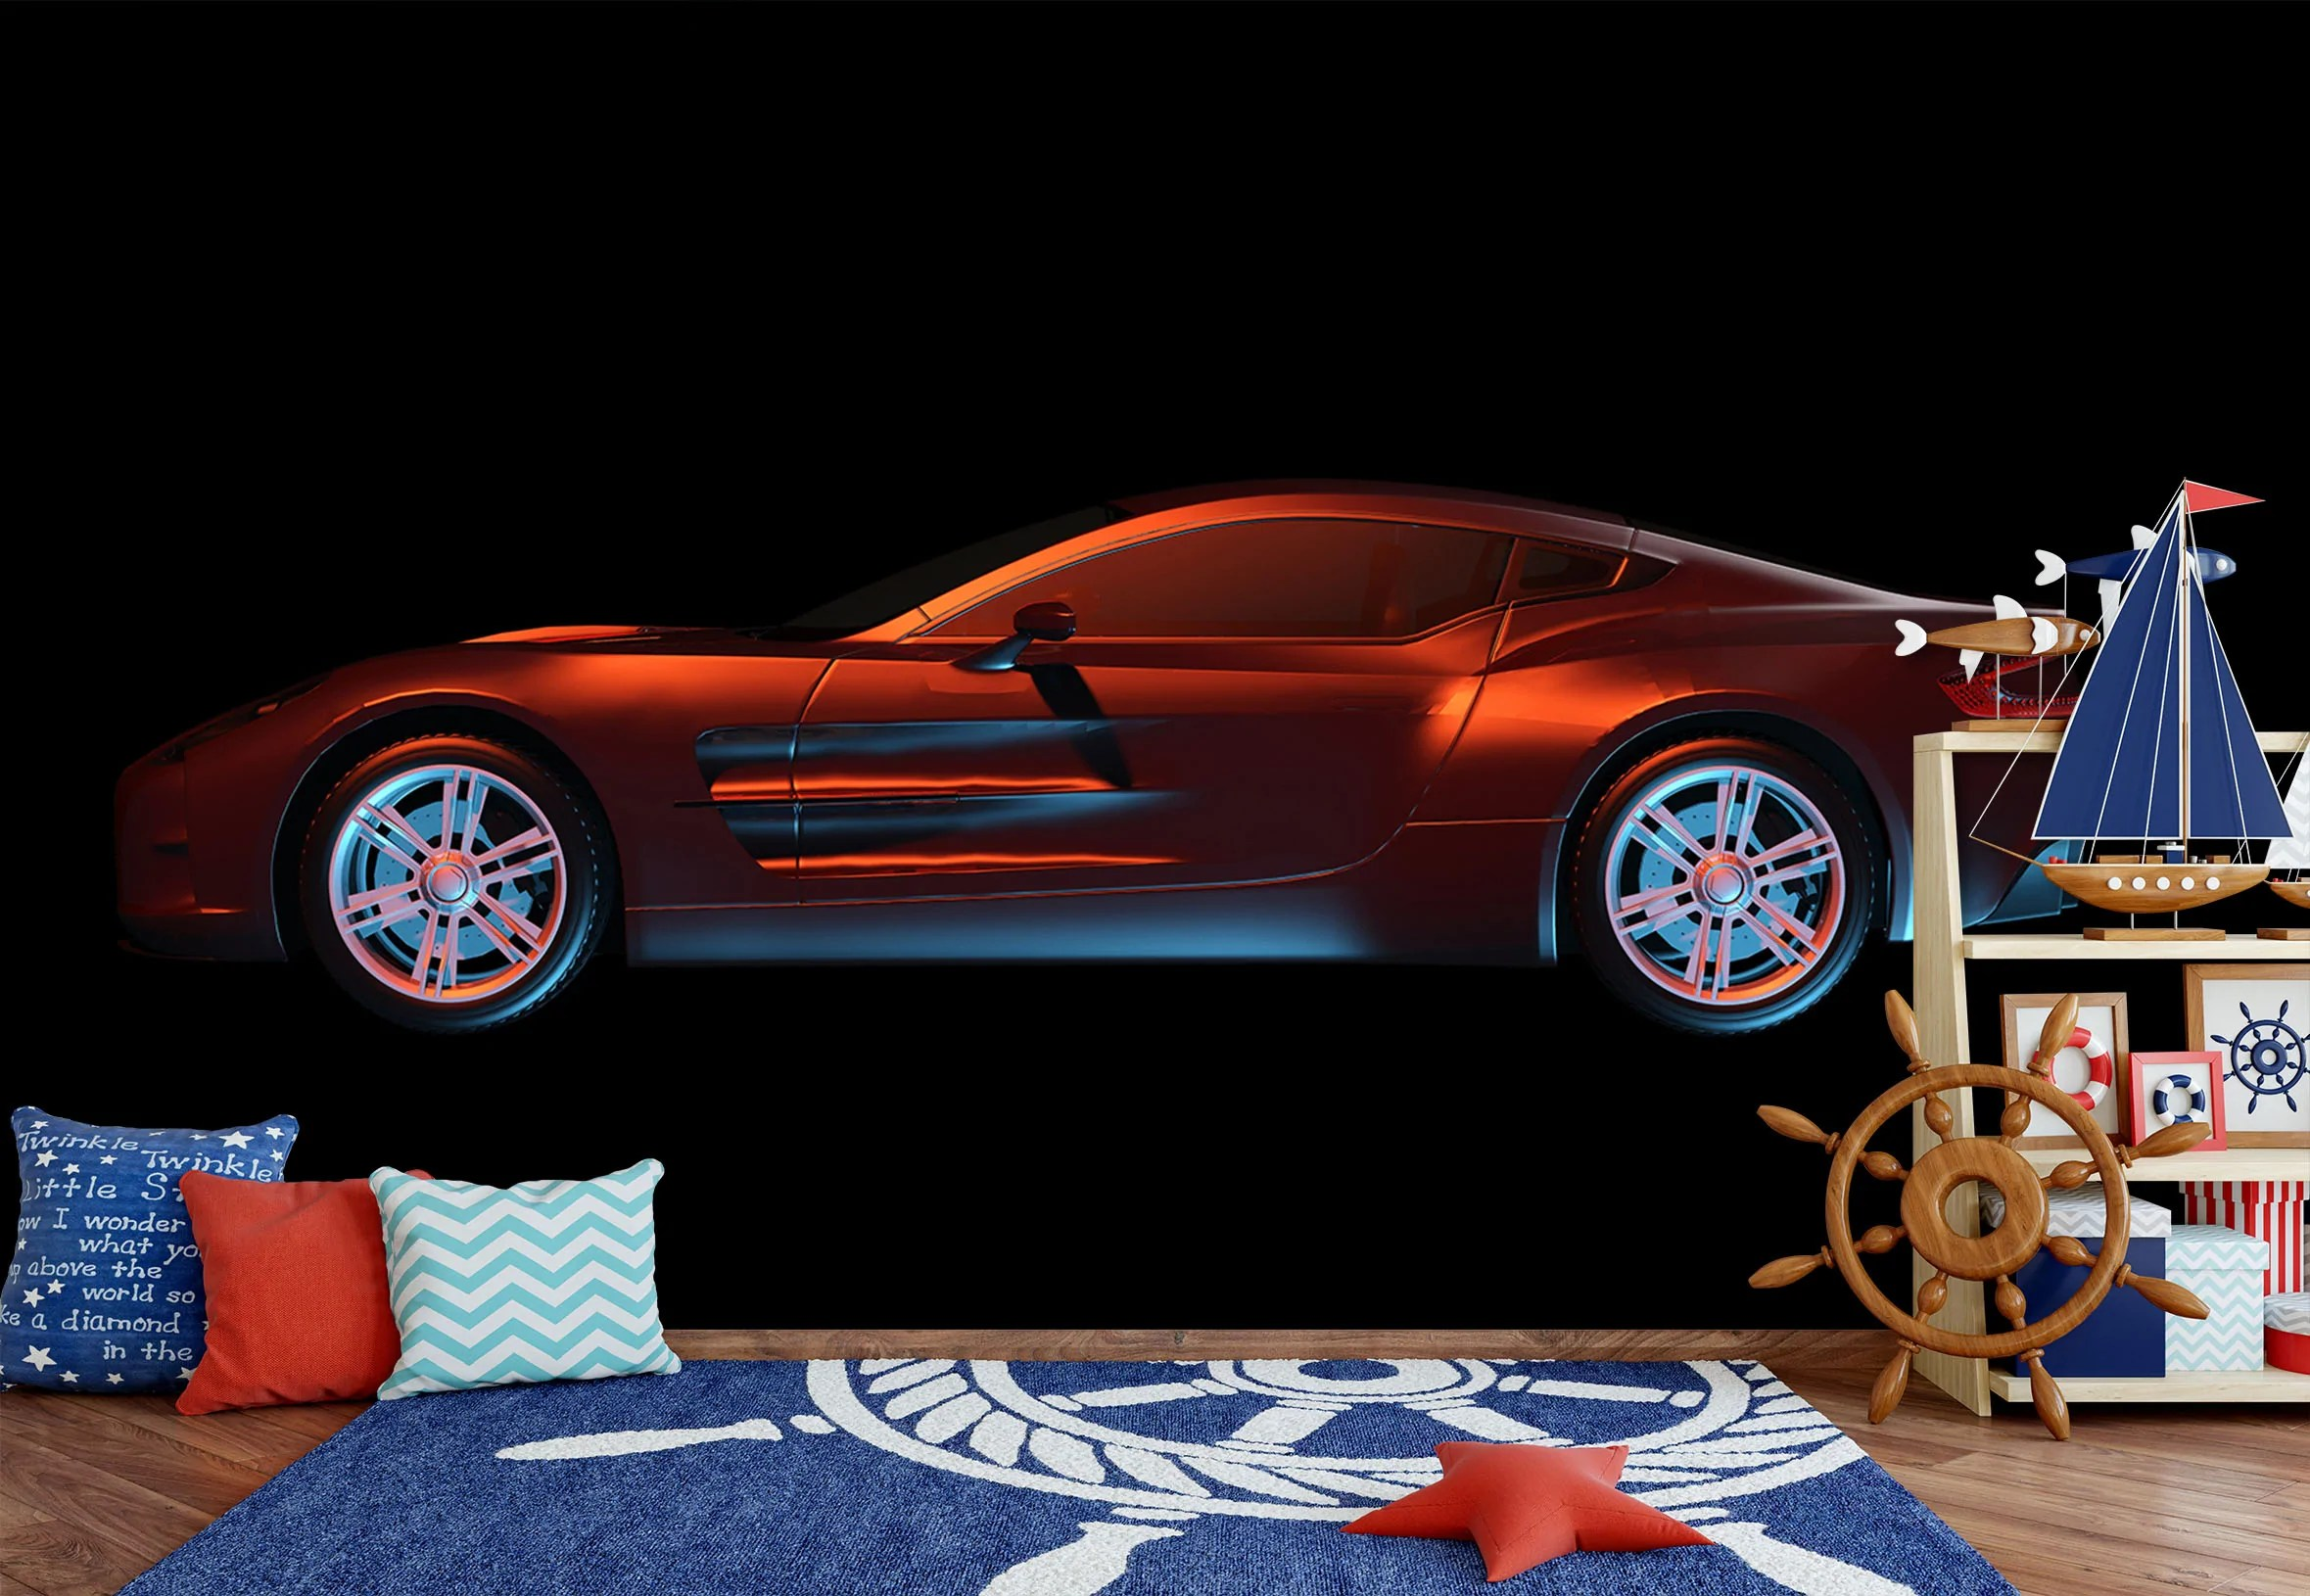 4k ultra hd classic car wallpapers. Home Decor Details About 3d Red Sports Car A100 Car Wallpaper Mural Poster Transport Wall Stickers Zoe Decor Decals Stickers Vinyl Art